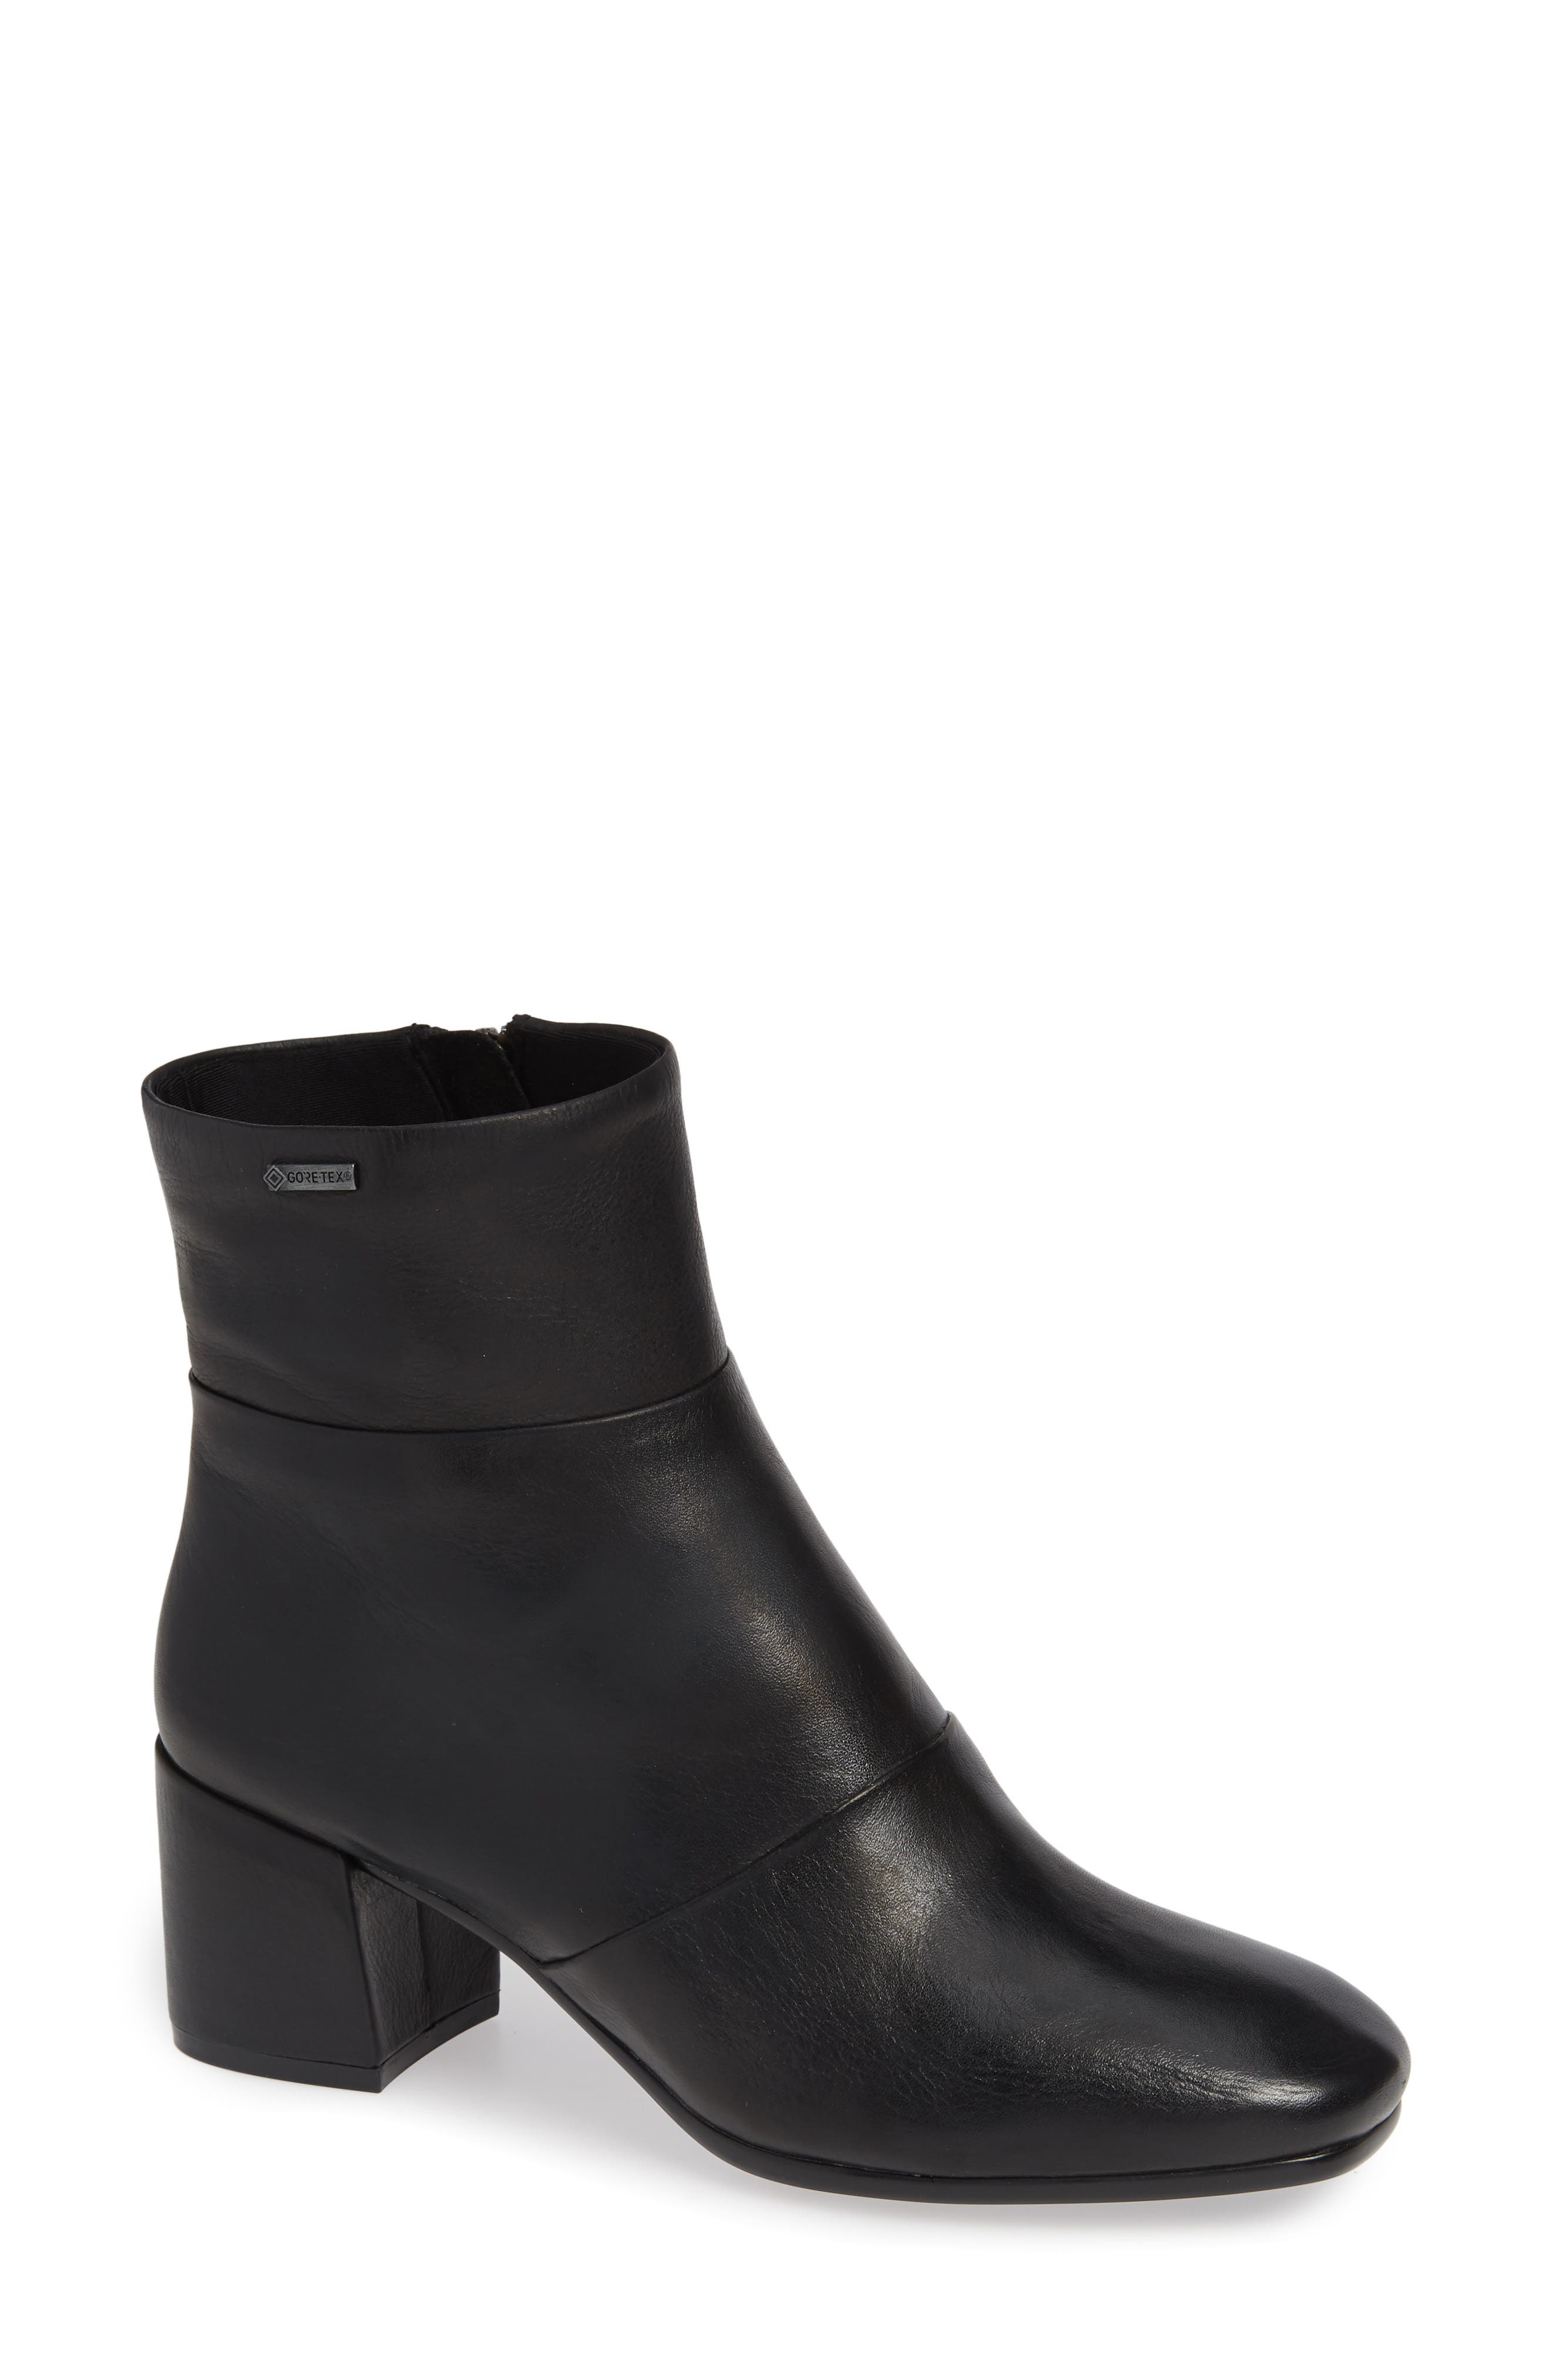 Kenneth Cole New York Eryc Bootie- Black